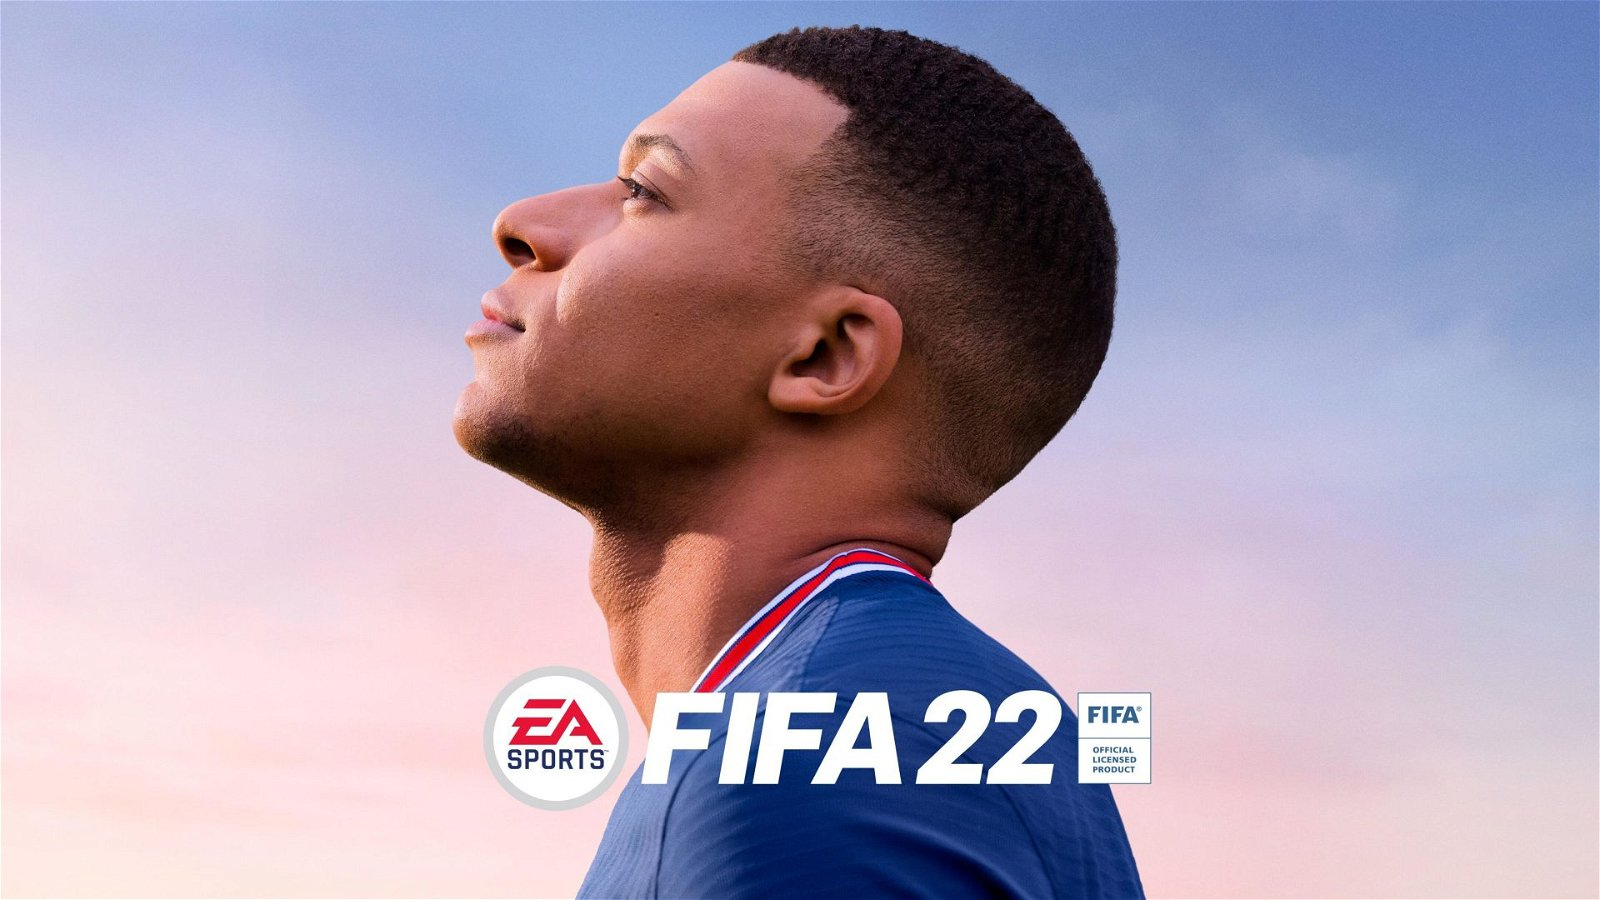 Fifa 22 Featured image